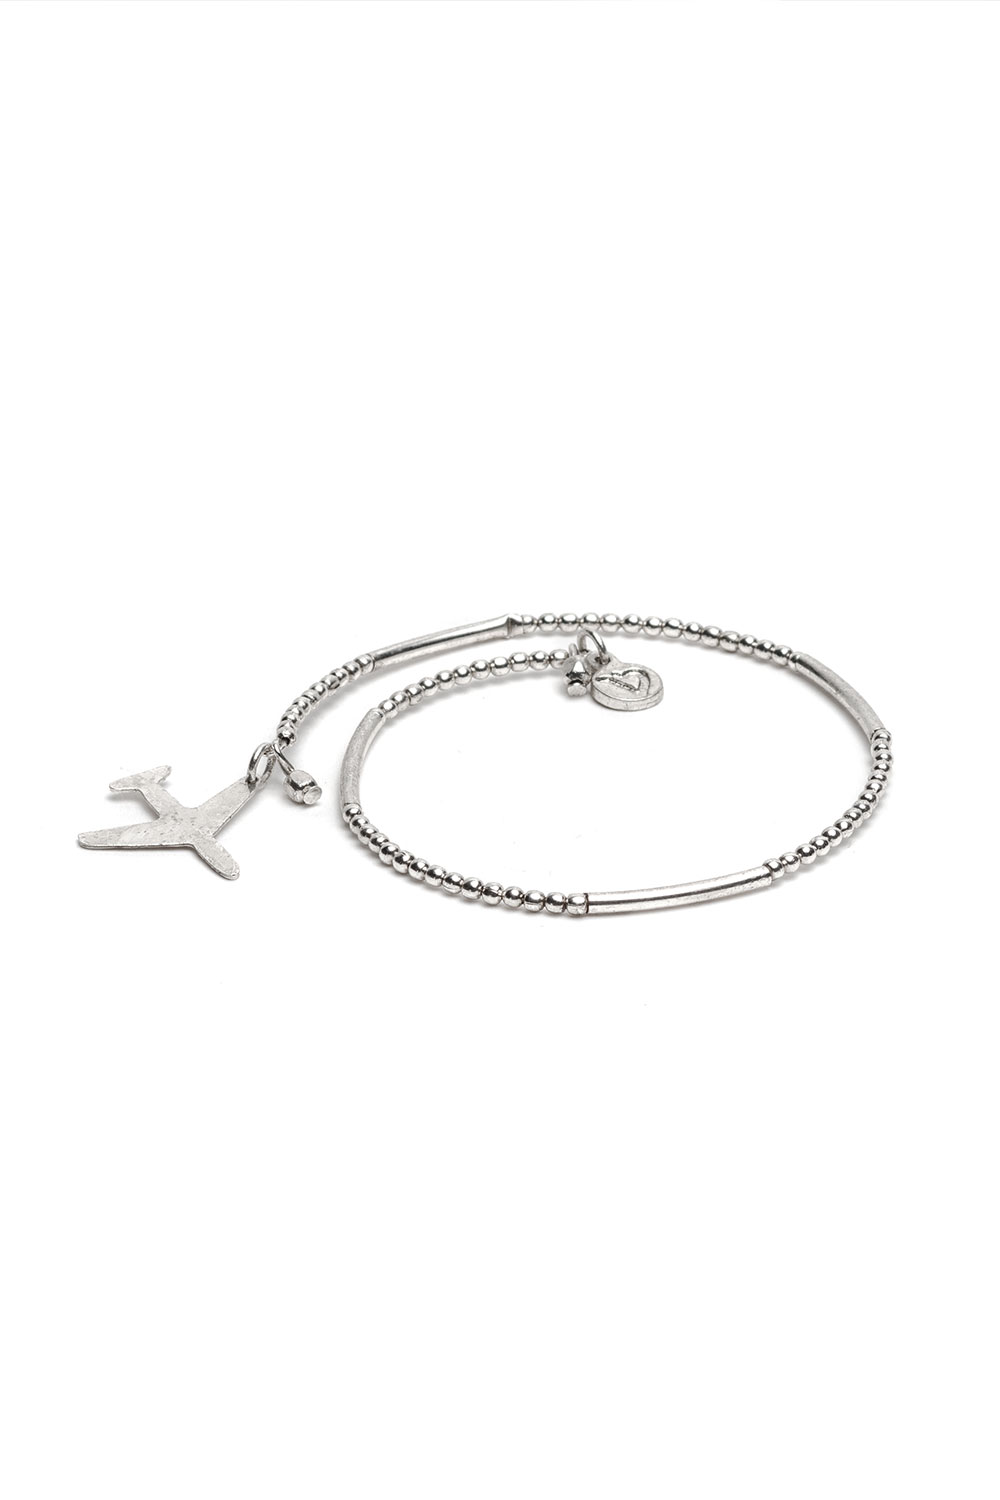 BANGLE LONG BARS MICRO SPHERES/AIRPLANE